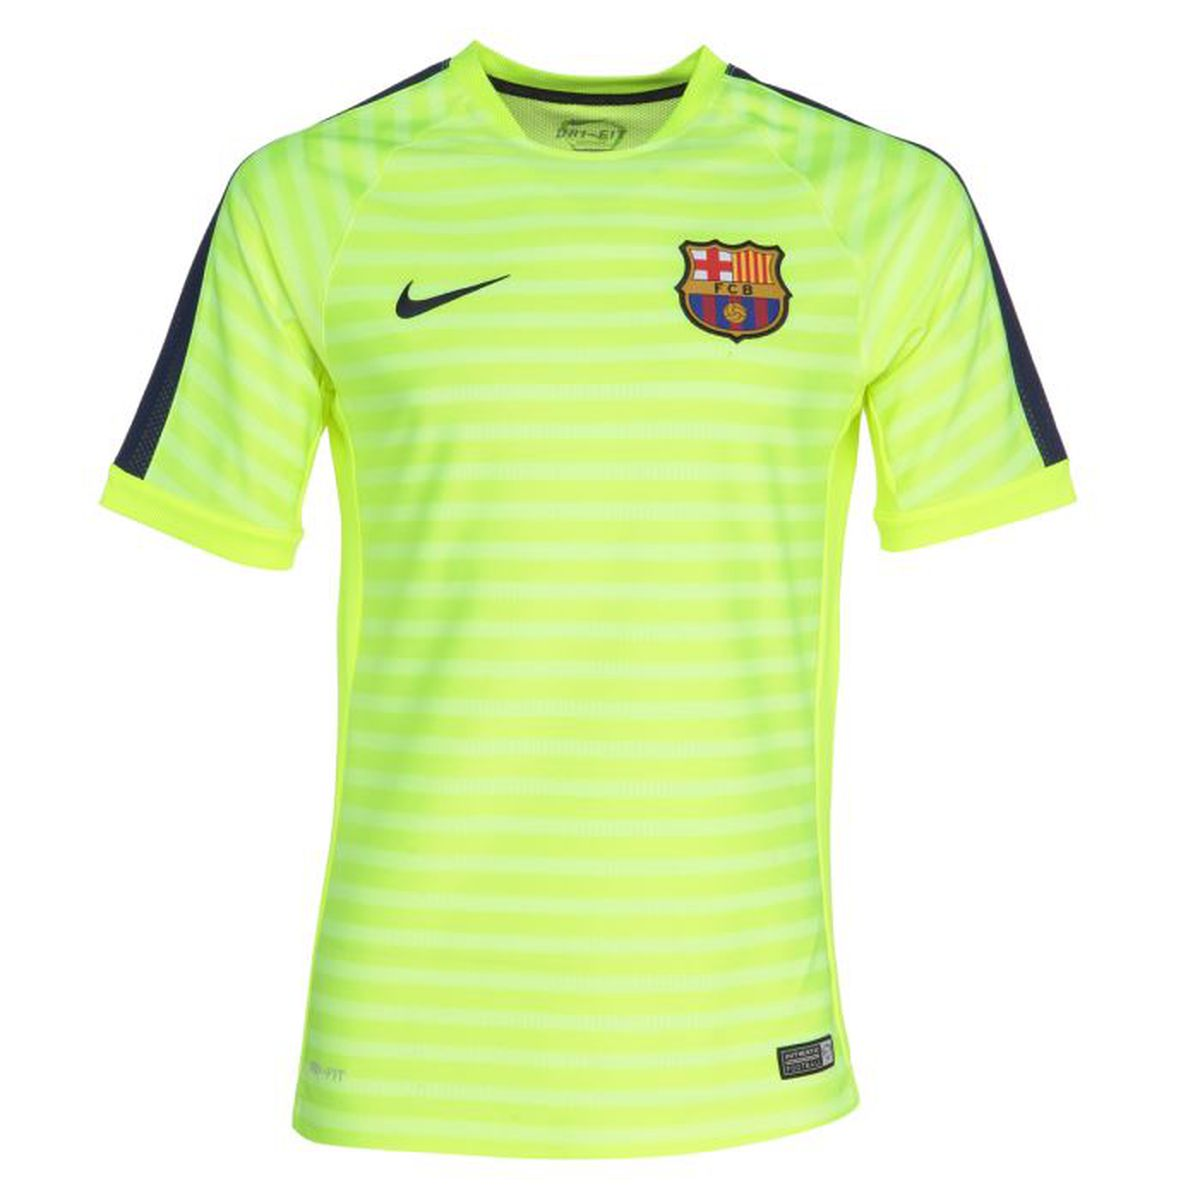 nike maillot football entrainement fc barcelone prix pas cher cdiscount. Black Bedroom Furniture Sets. Home Design Ideas